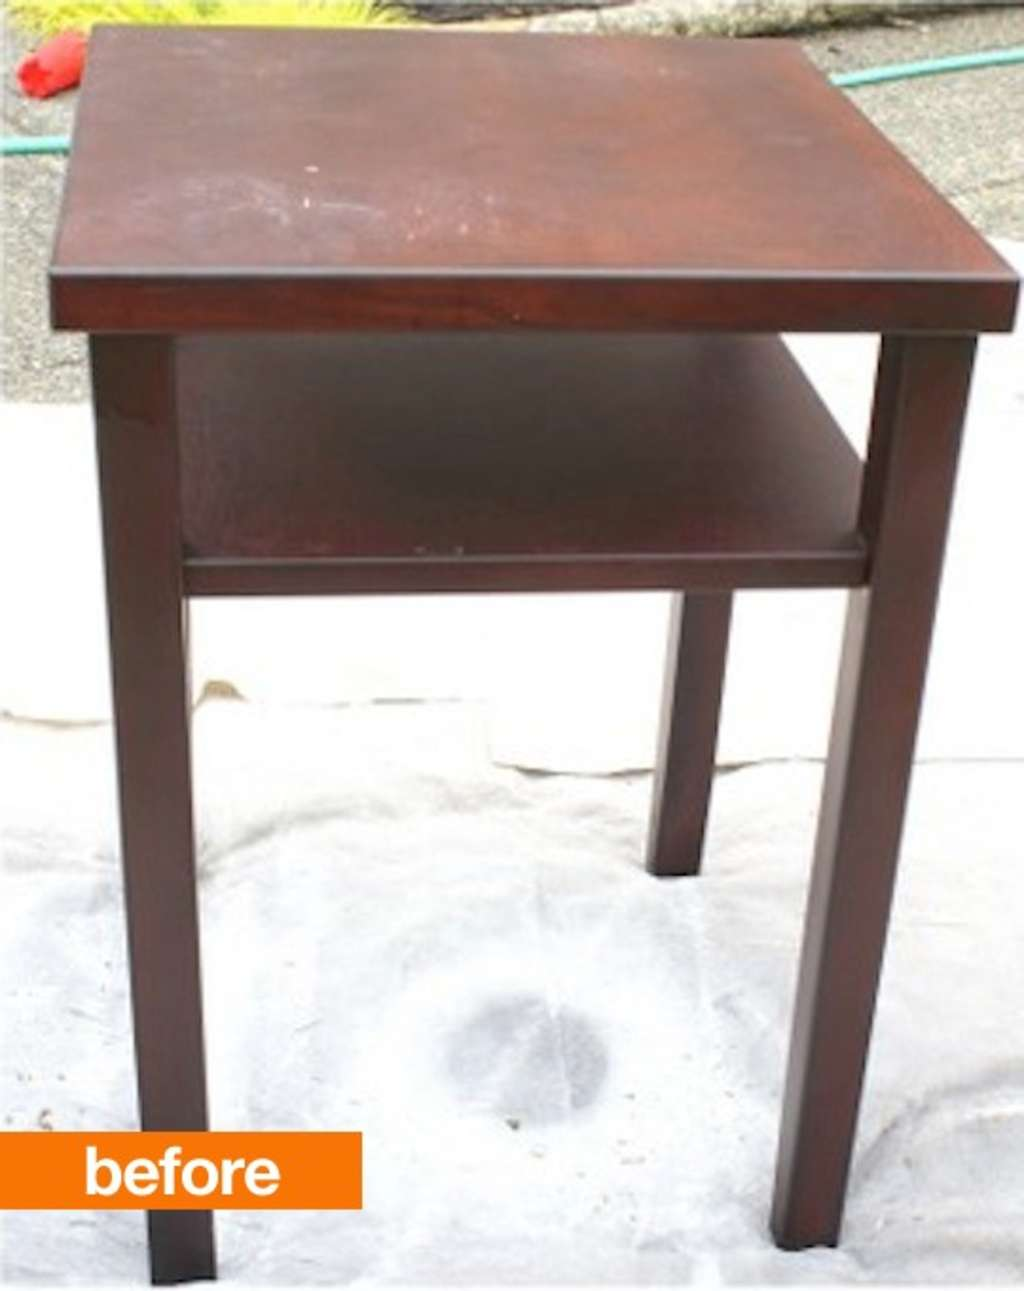 Before & After: Plain Jane Nightstand Gets a Reclaimed Wood Makeover